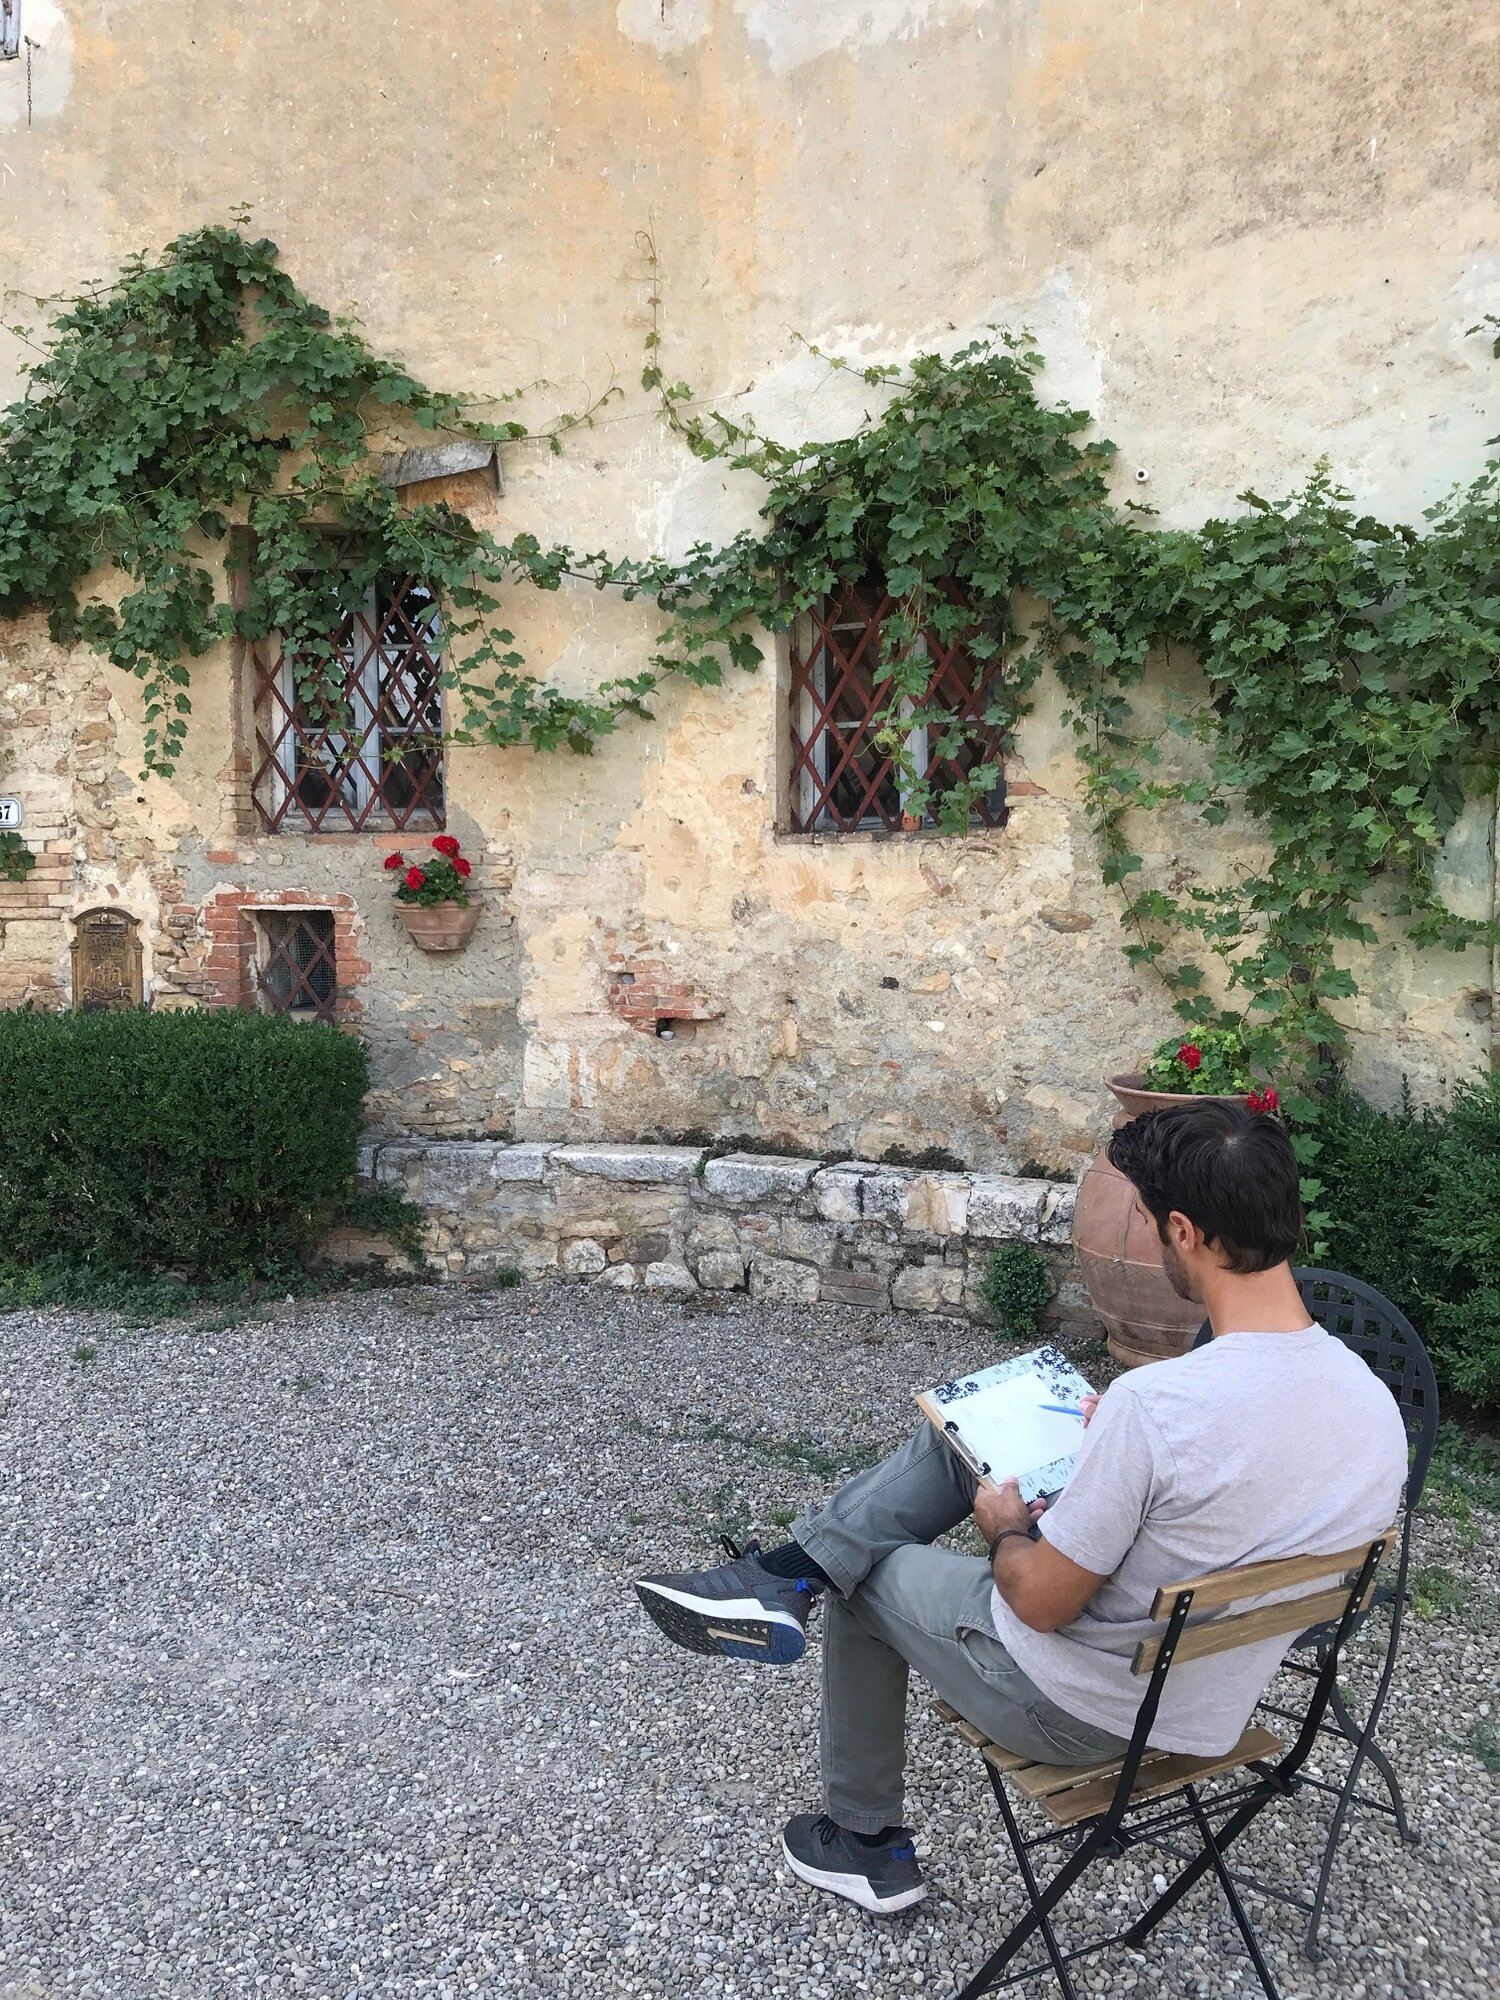 Me drawing at Tenuta di Spannocchia, Italy, 2019